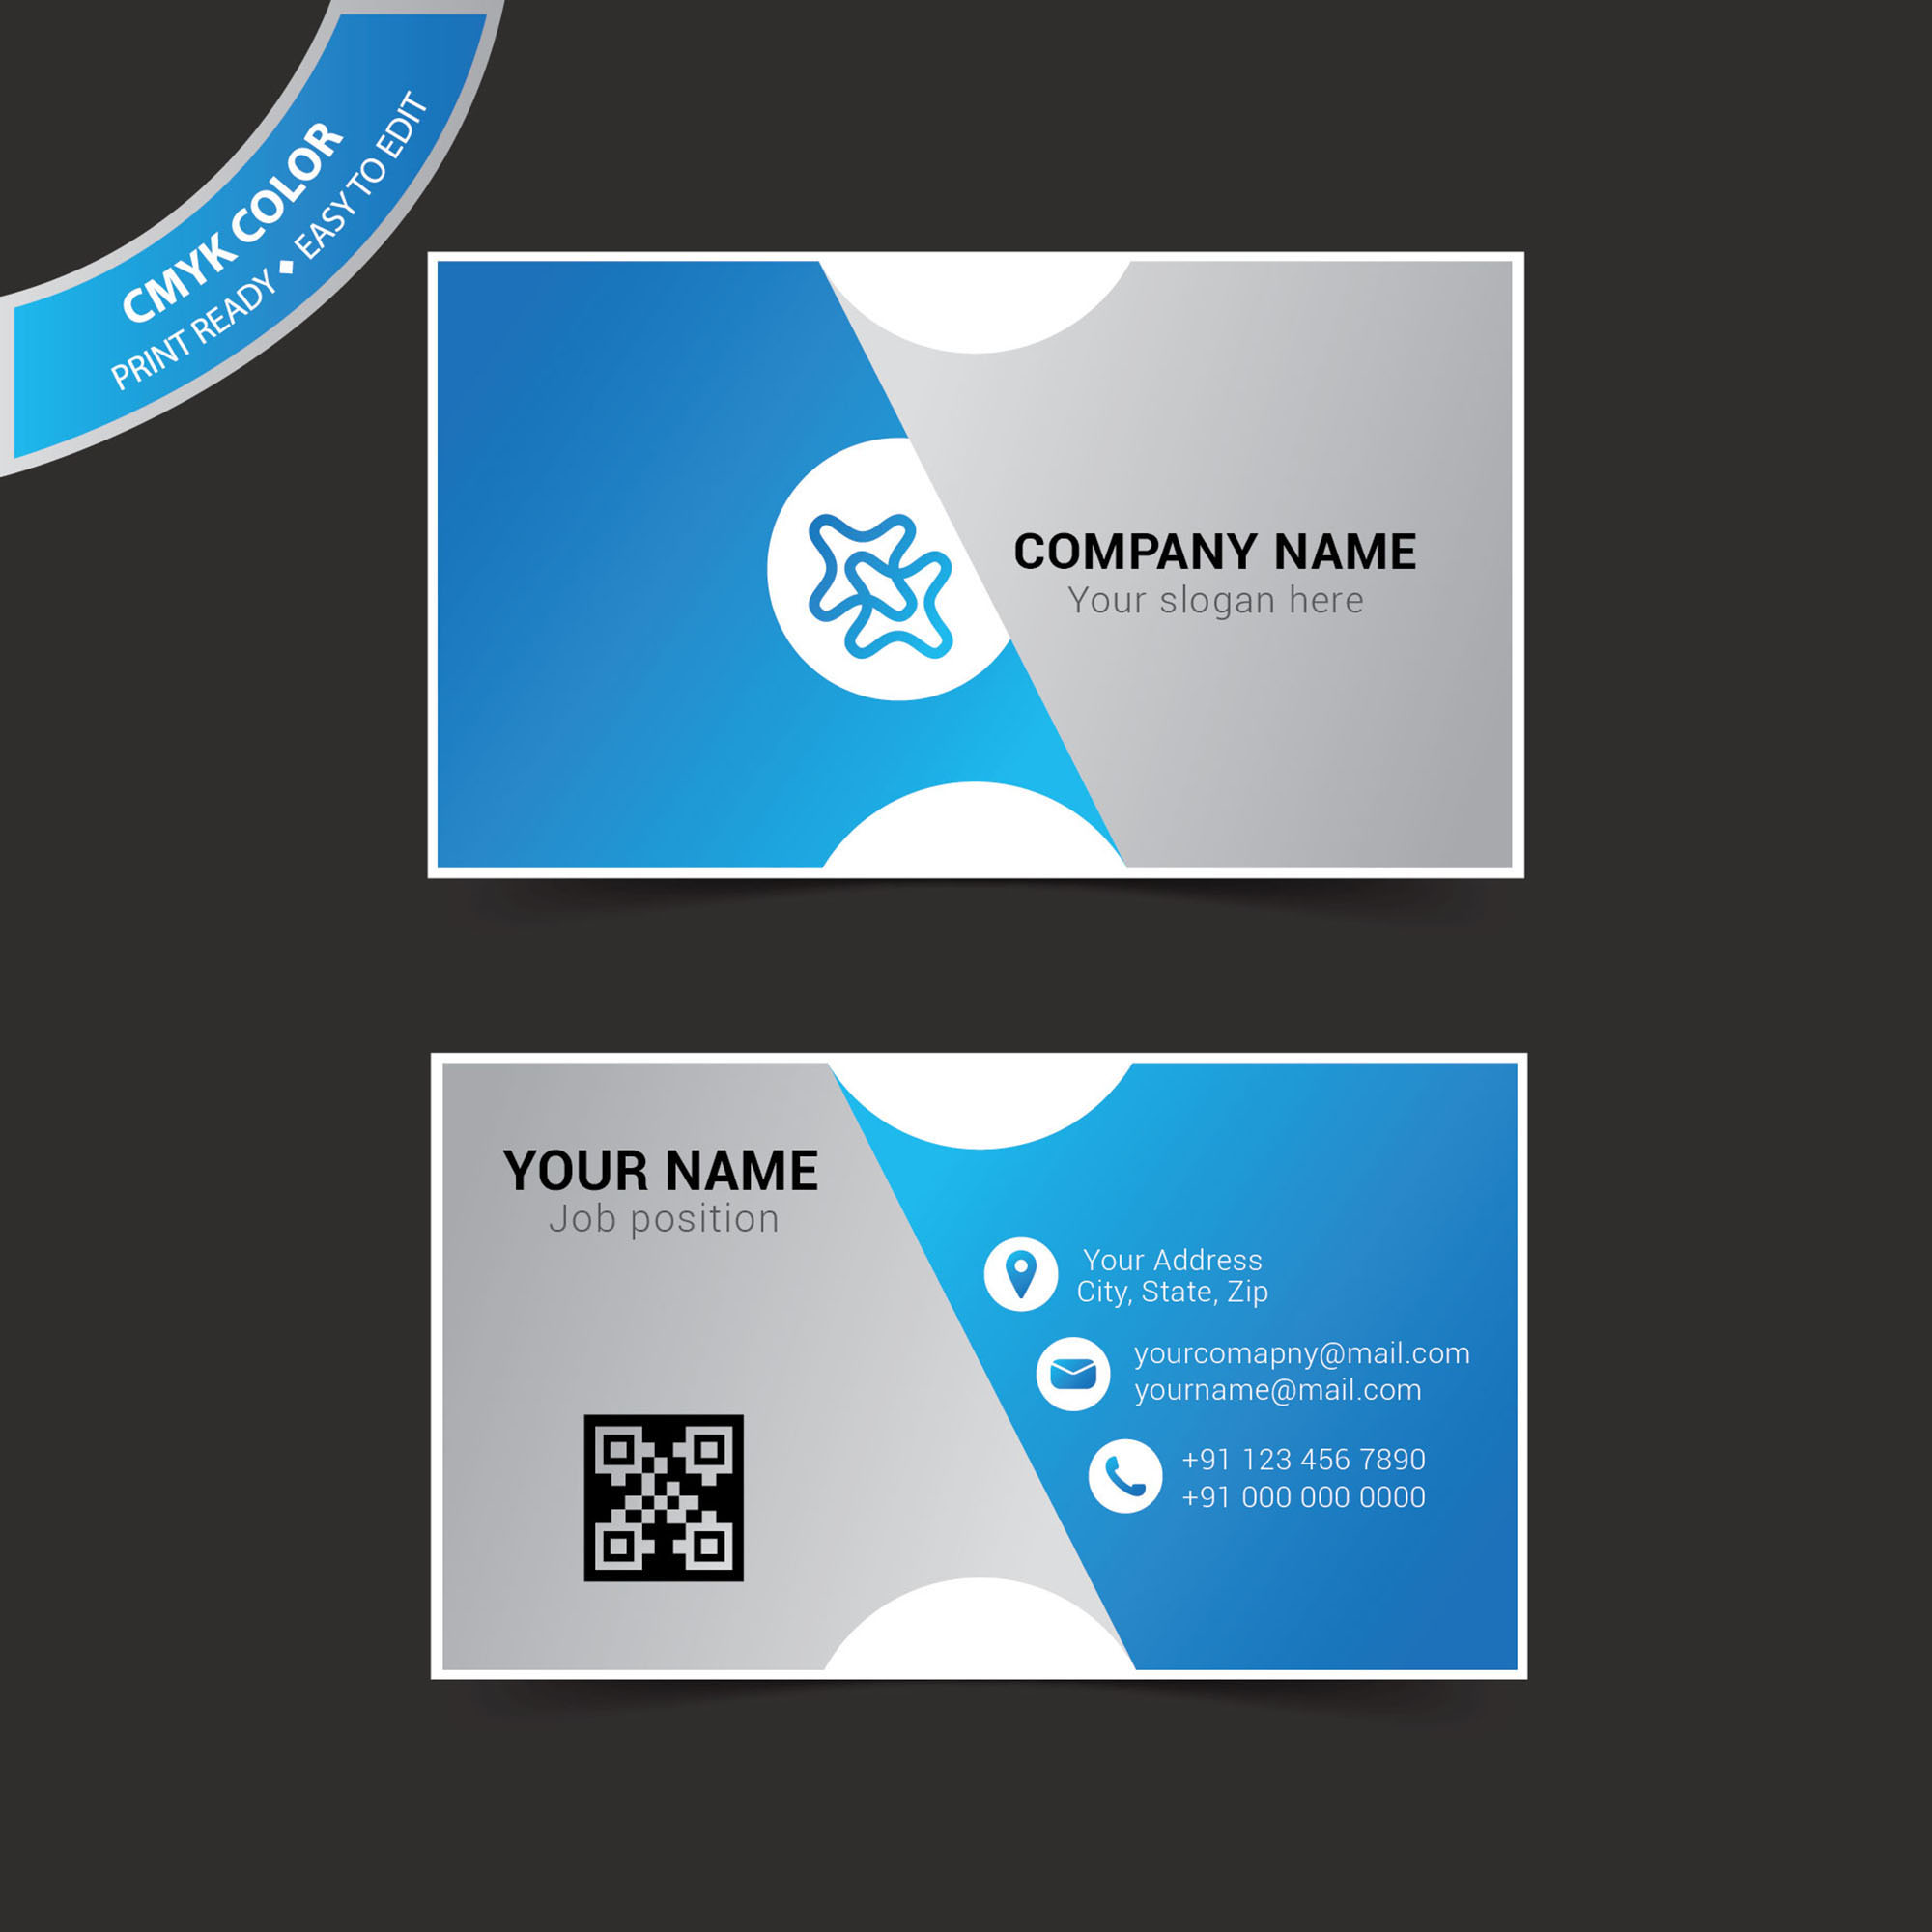 Abstract Business Card Design Creative Graphic Layout Template